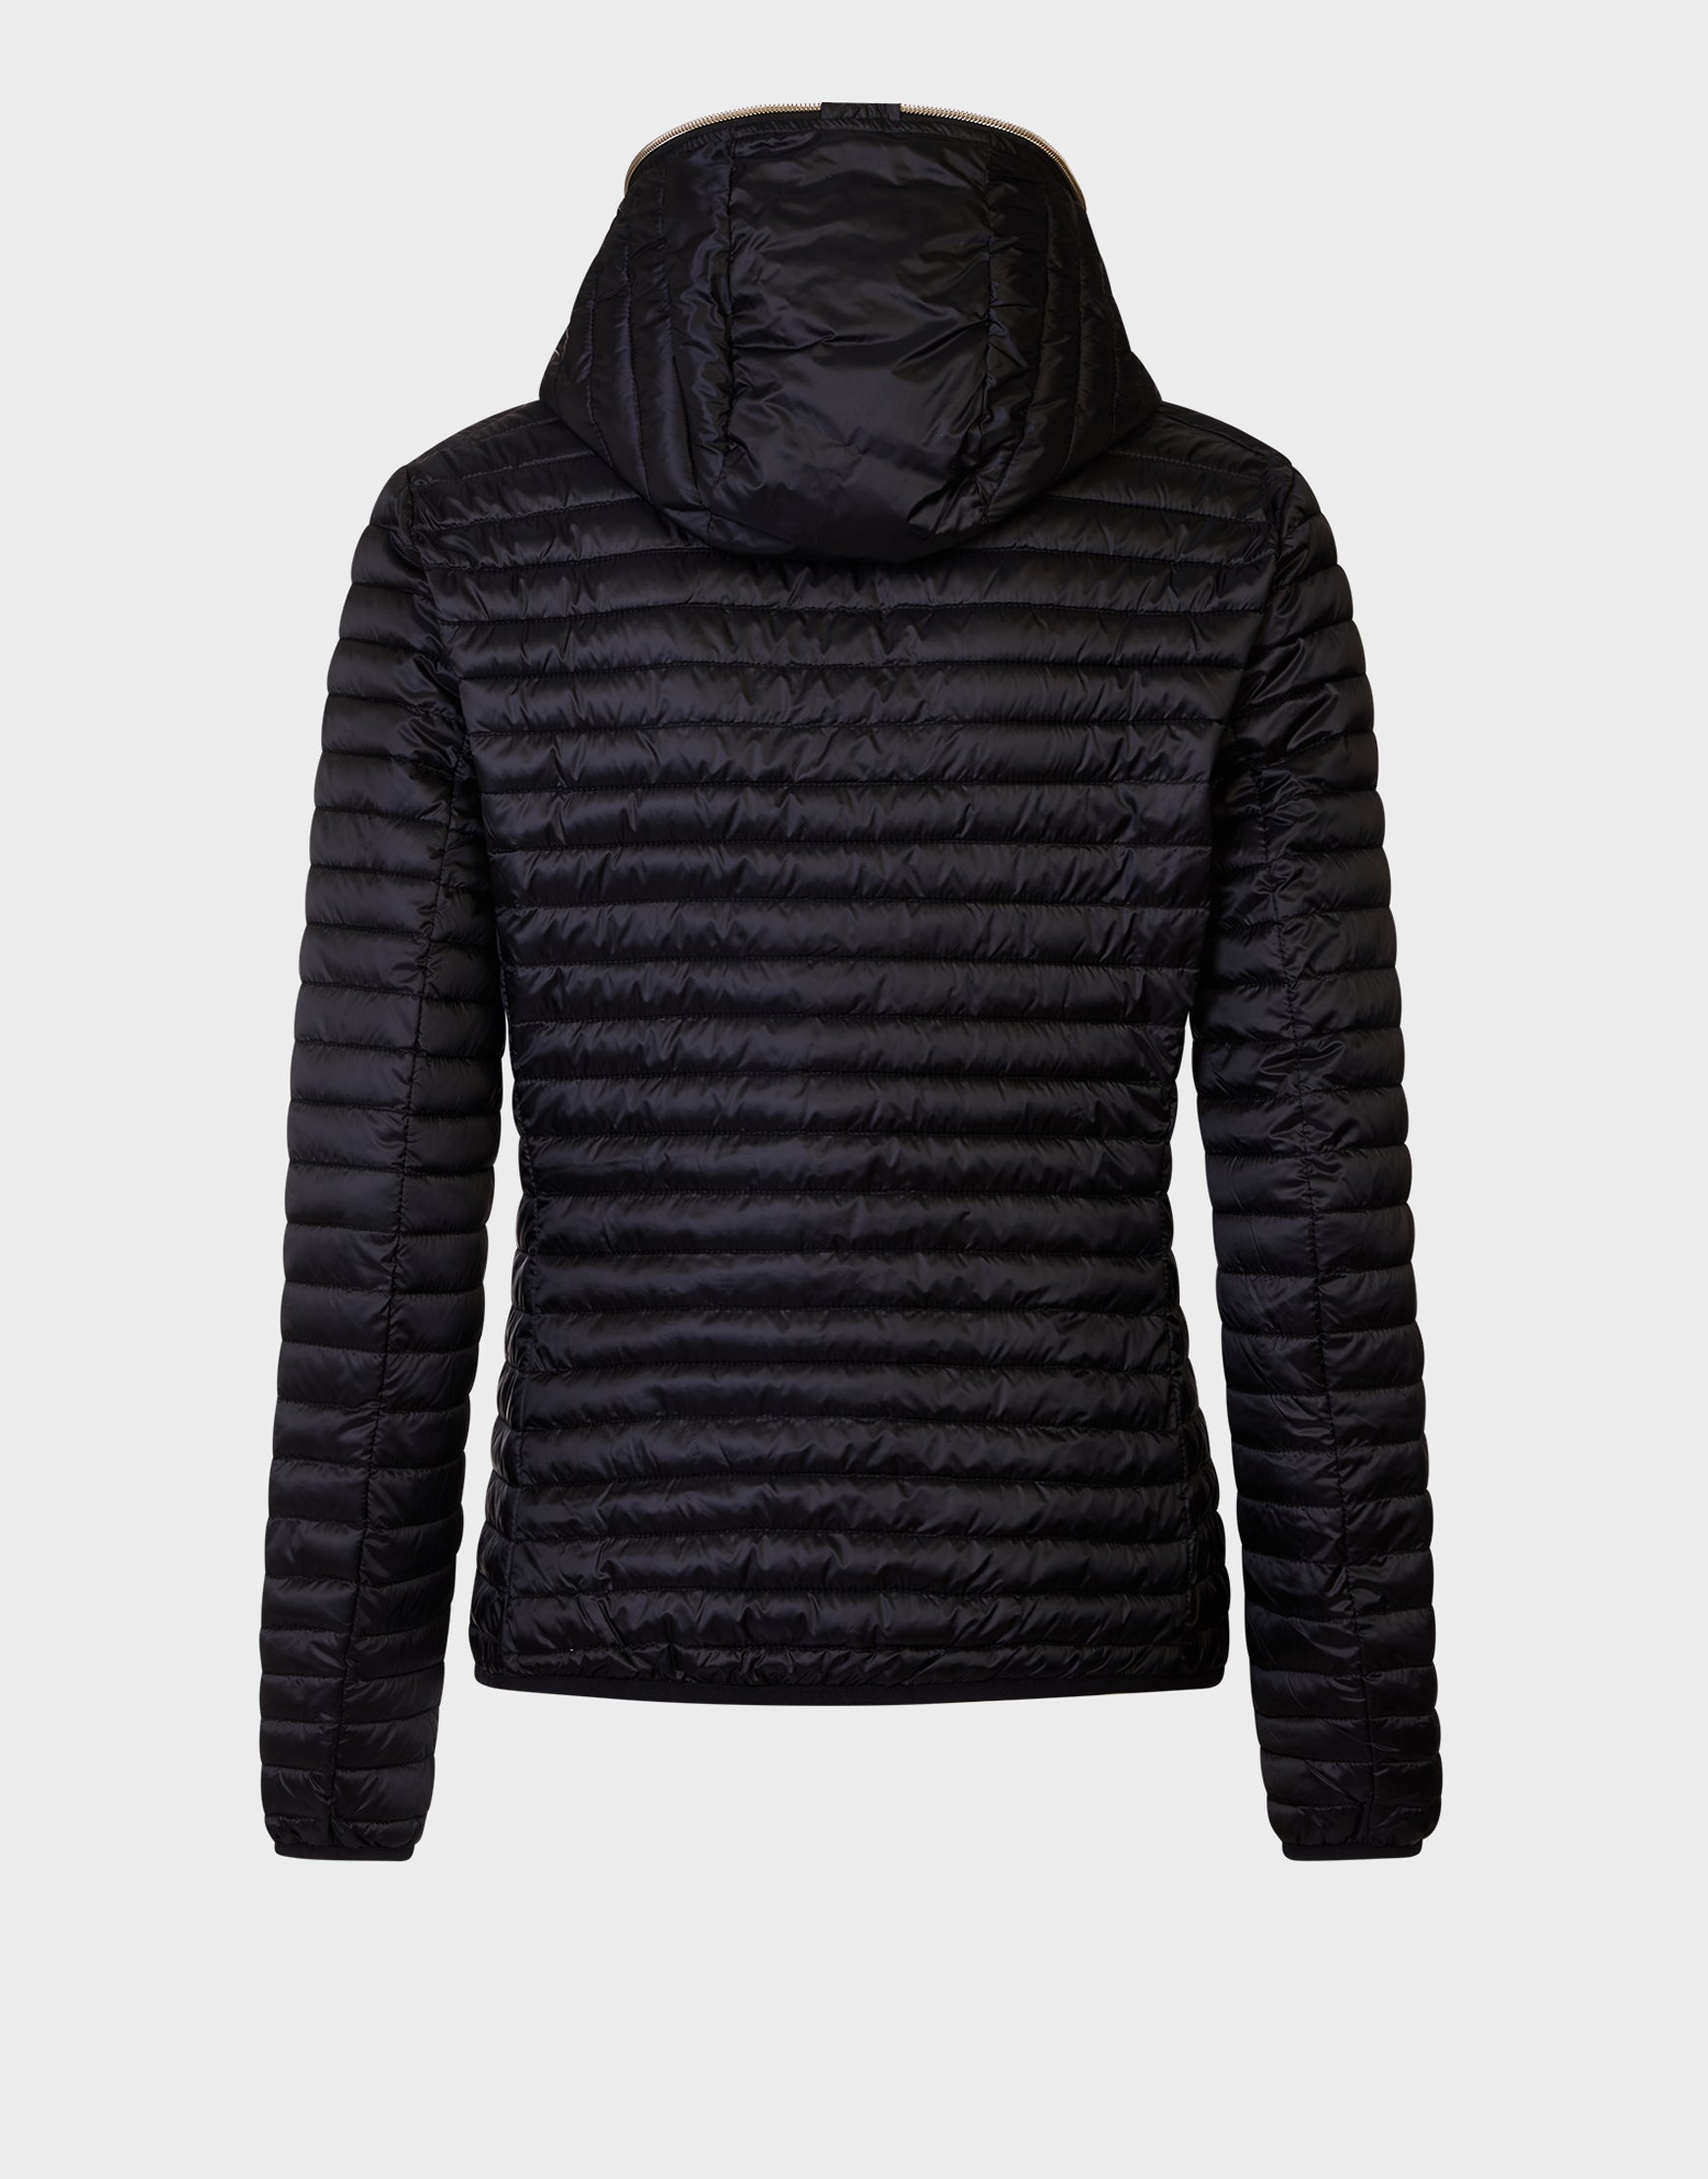 Womens IRIS Hooded Jacket in Black